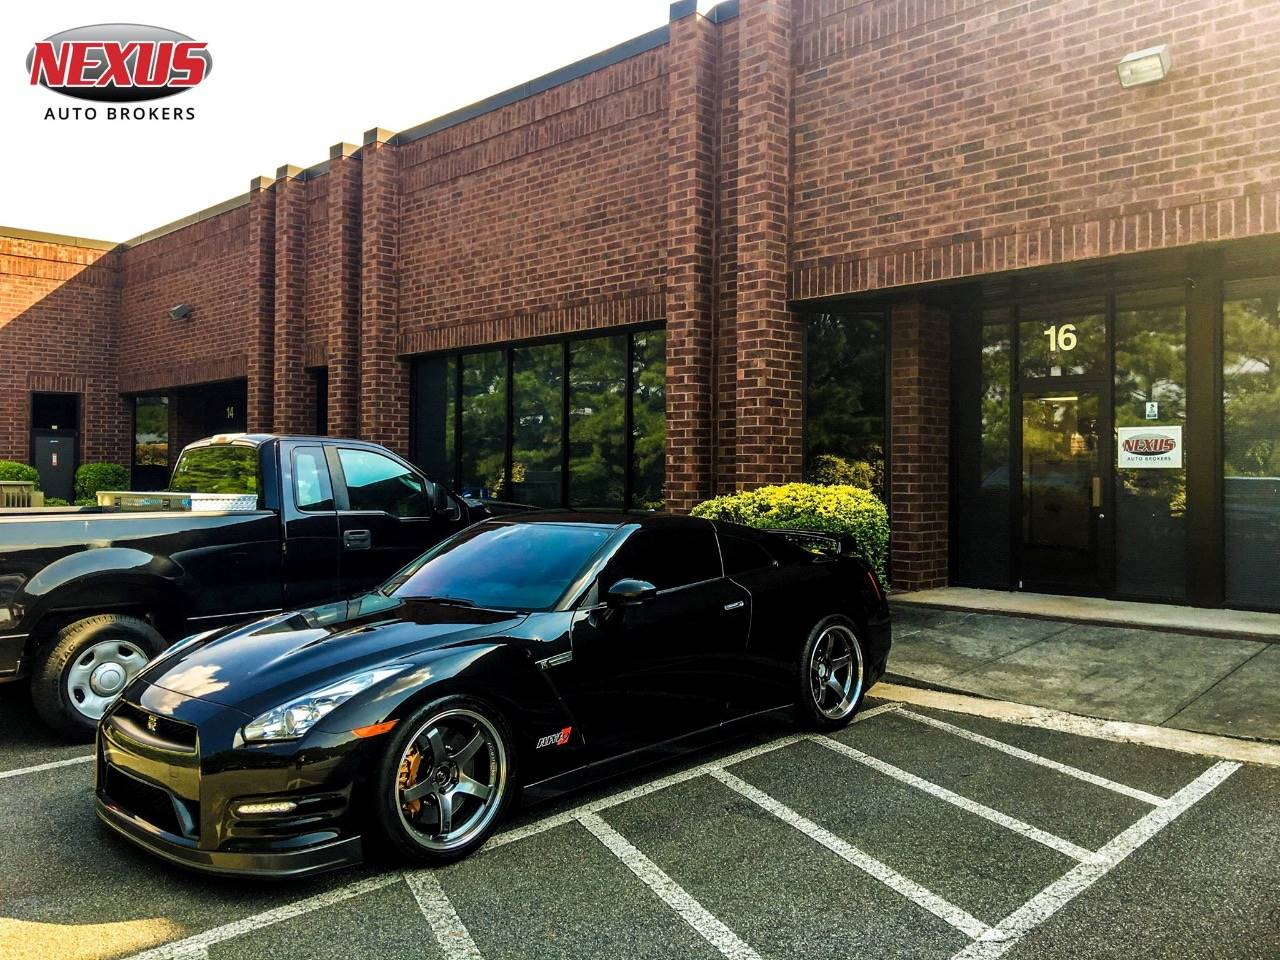 never thought i would be in a gt r but thanks to nexus for providing excellent trade on my lamborghini and offering this high horsepower gt r alpha9 grp - How To Become A Auto Broker